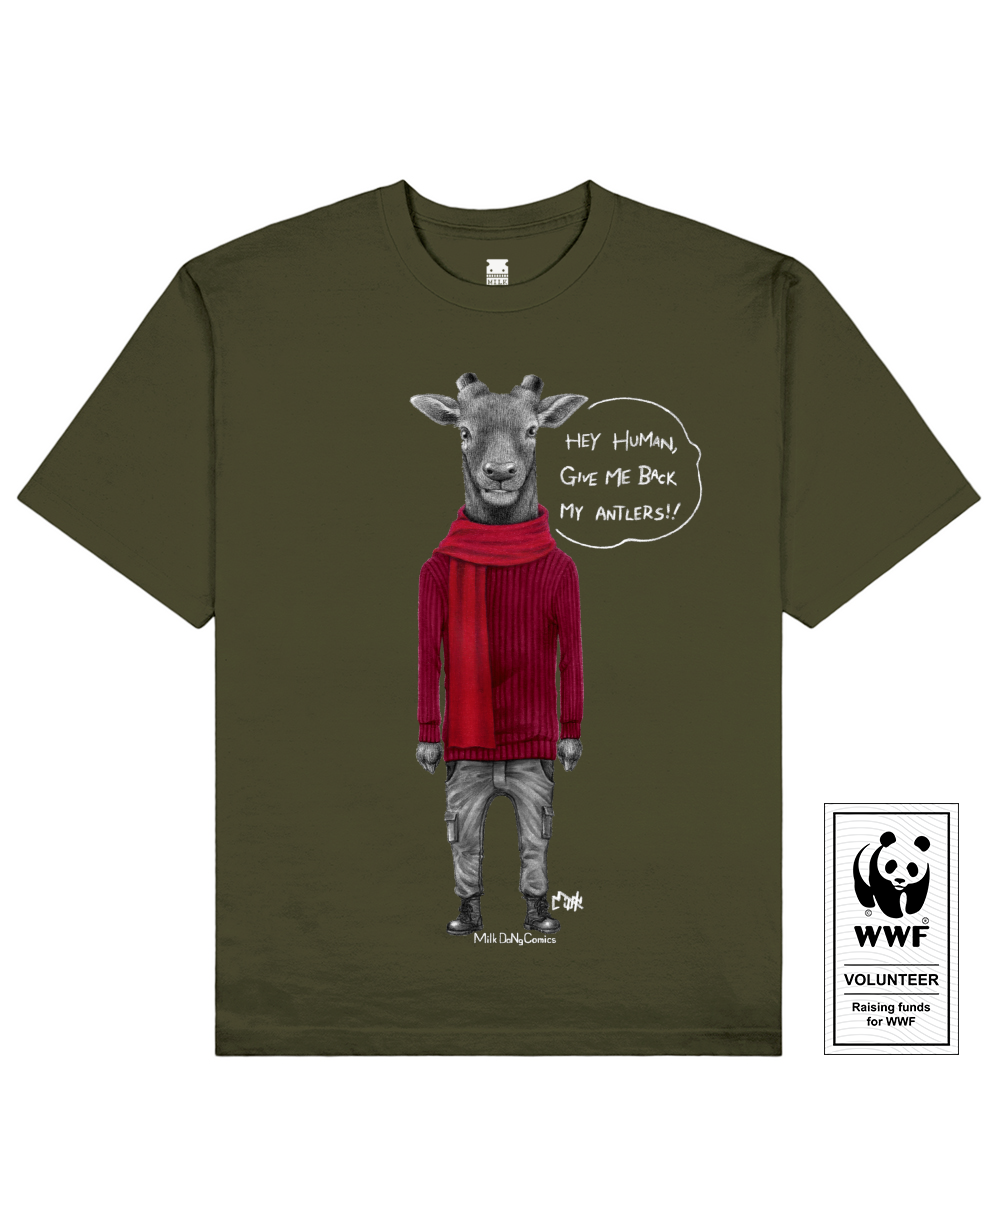 ANTLERLESS DEER Printed T-Shirt in Khaki - T-Shirts - Milk DoNg Comics - BRANMA